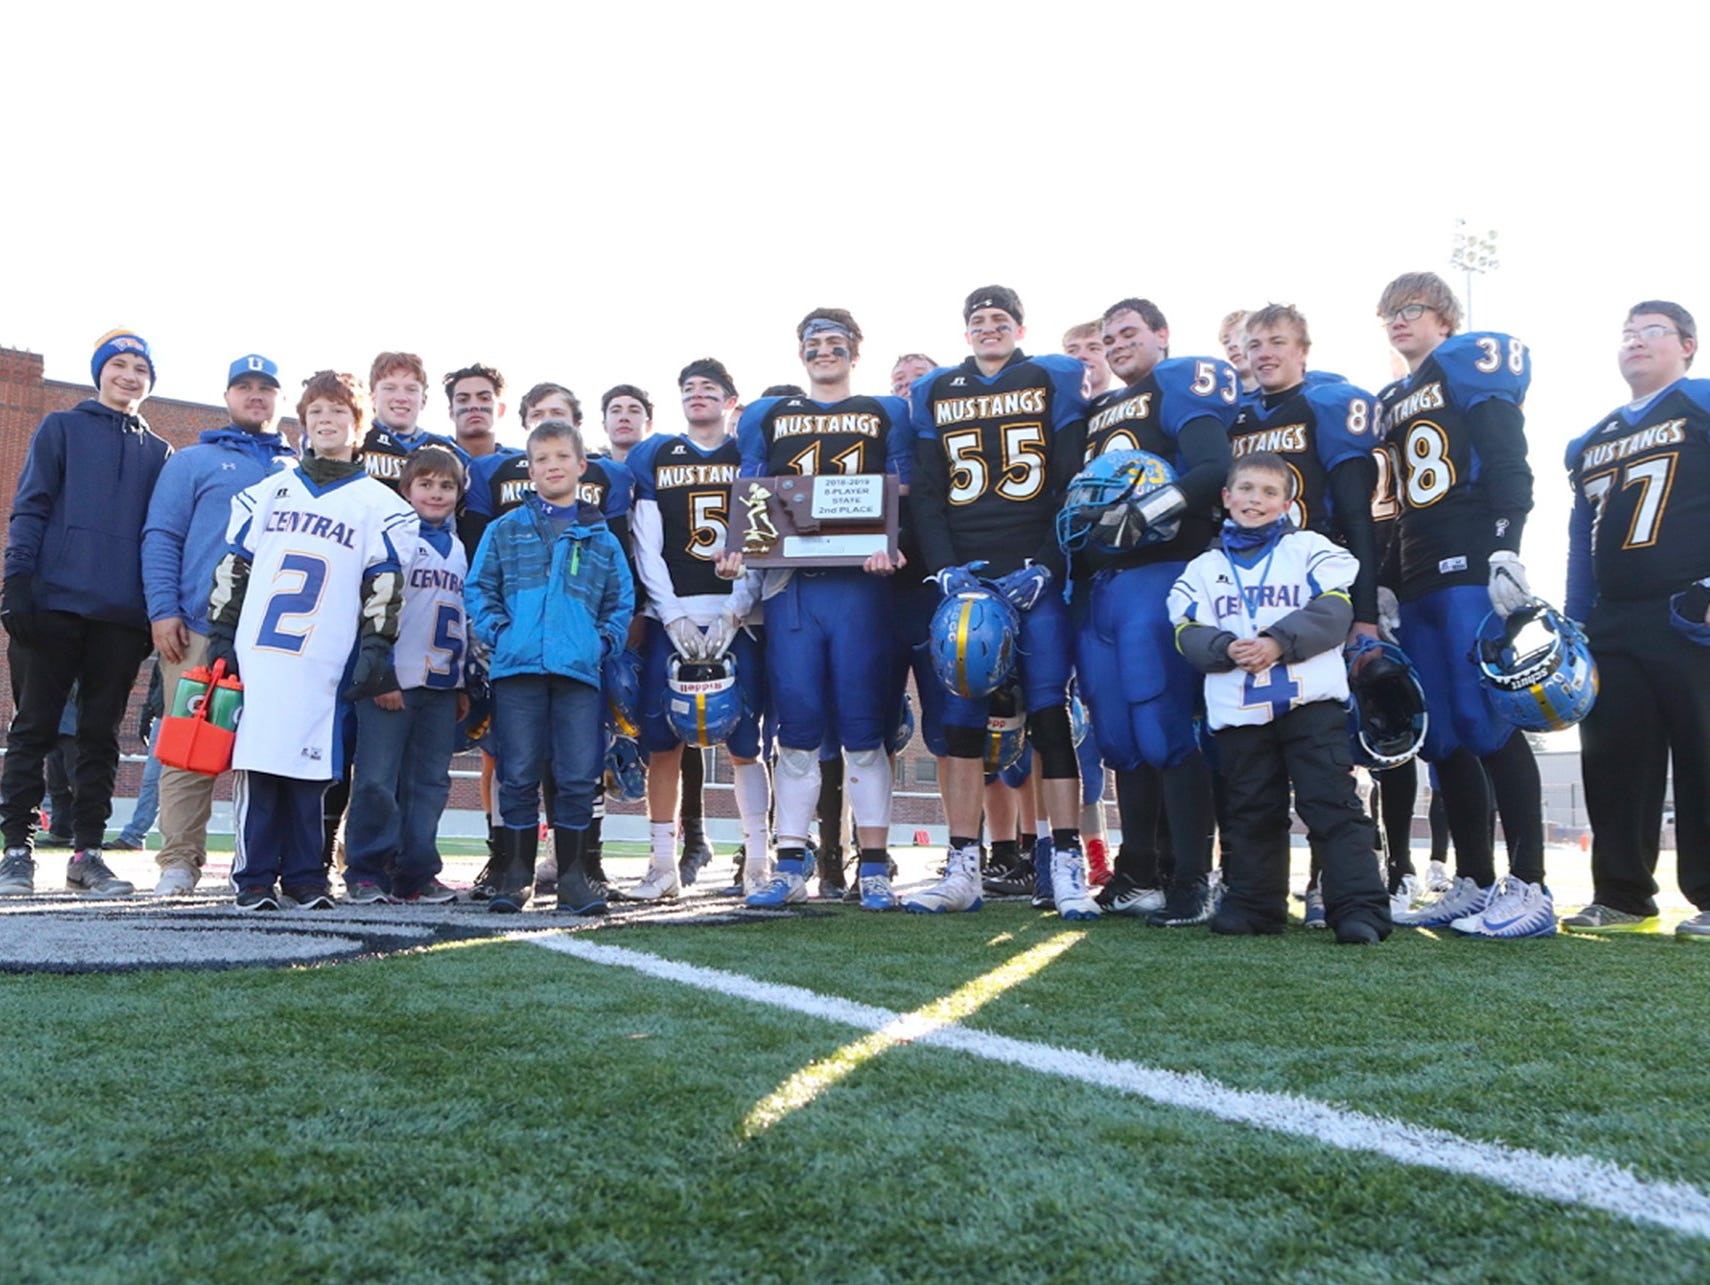 The Great Falls Central Mustangs finished runner-up in Class C eight-man football this season.